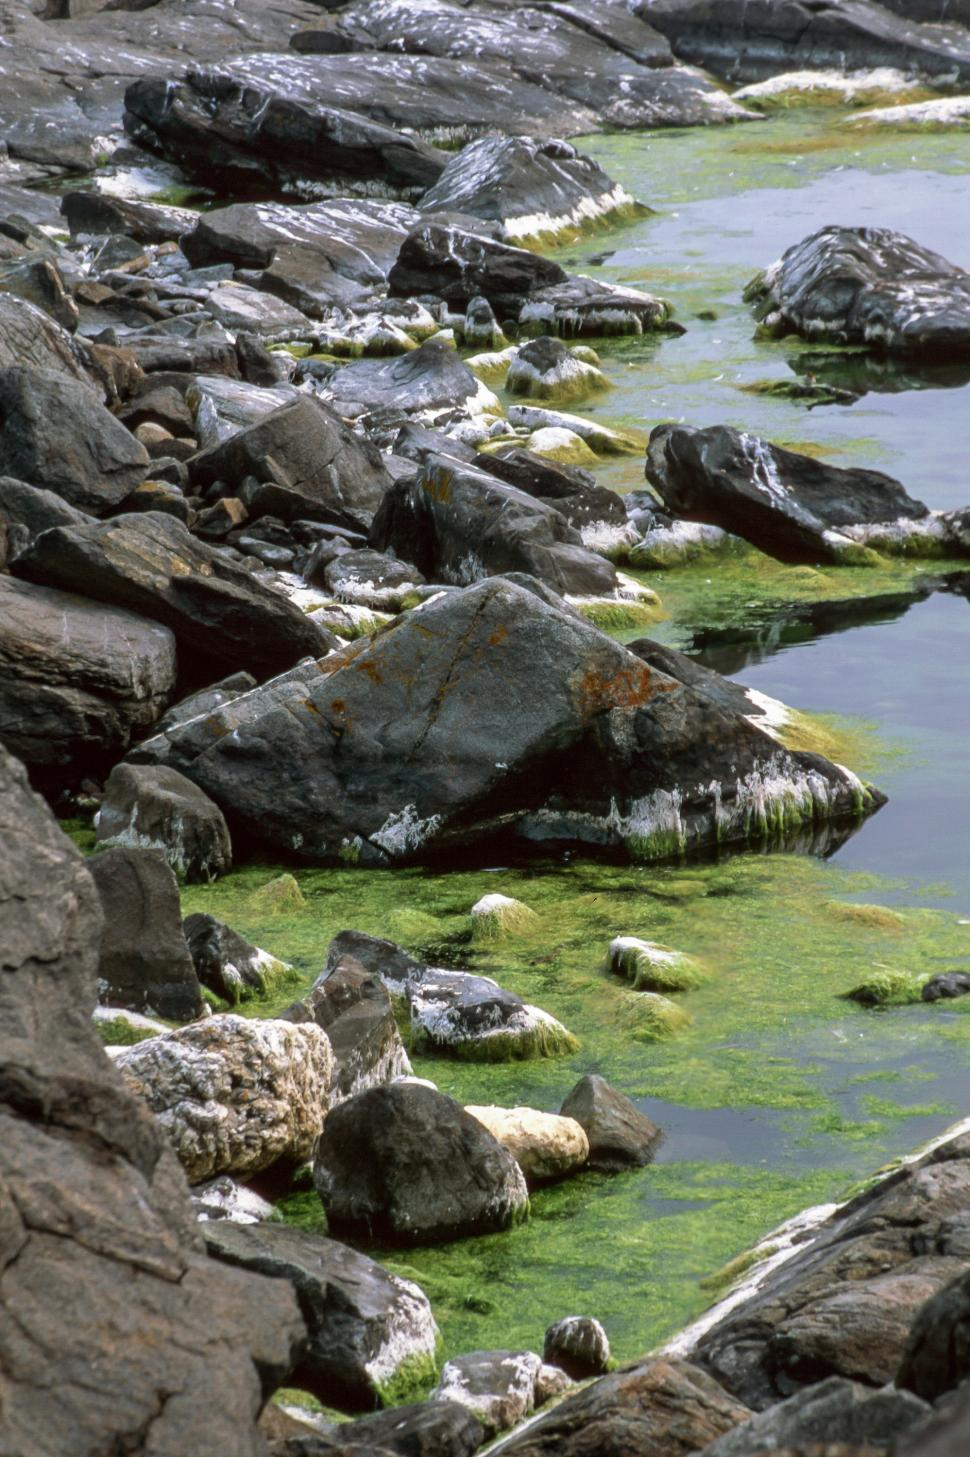 Download Free Stock HD Photo of Rocky Shore and algae Online